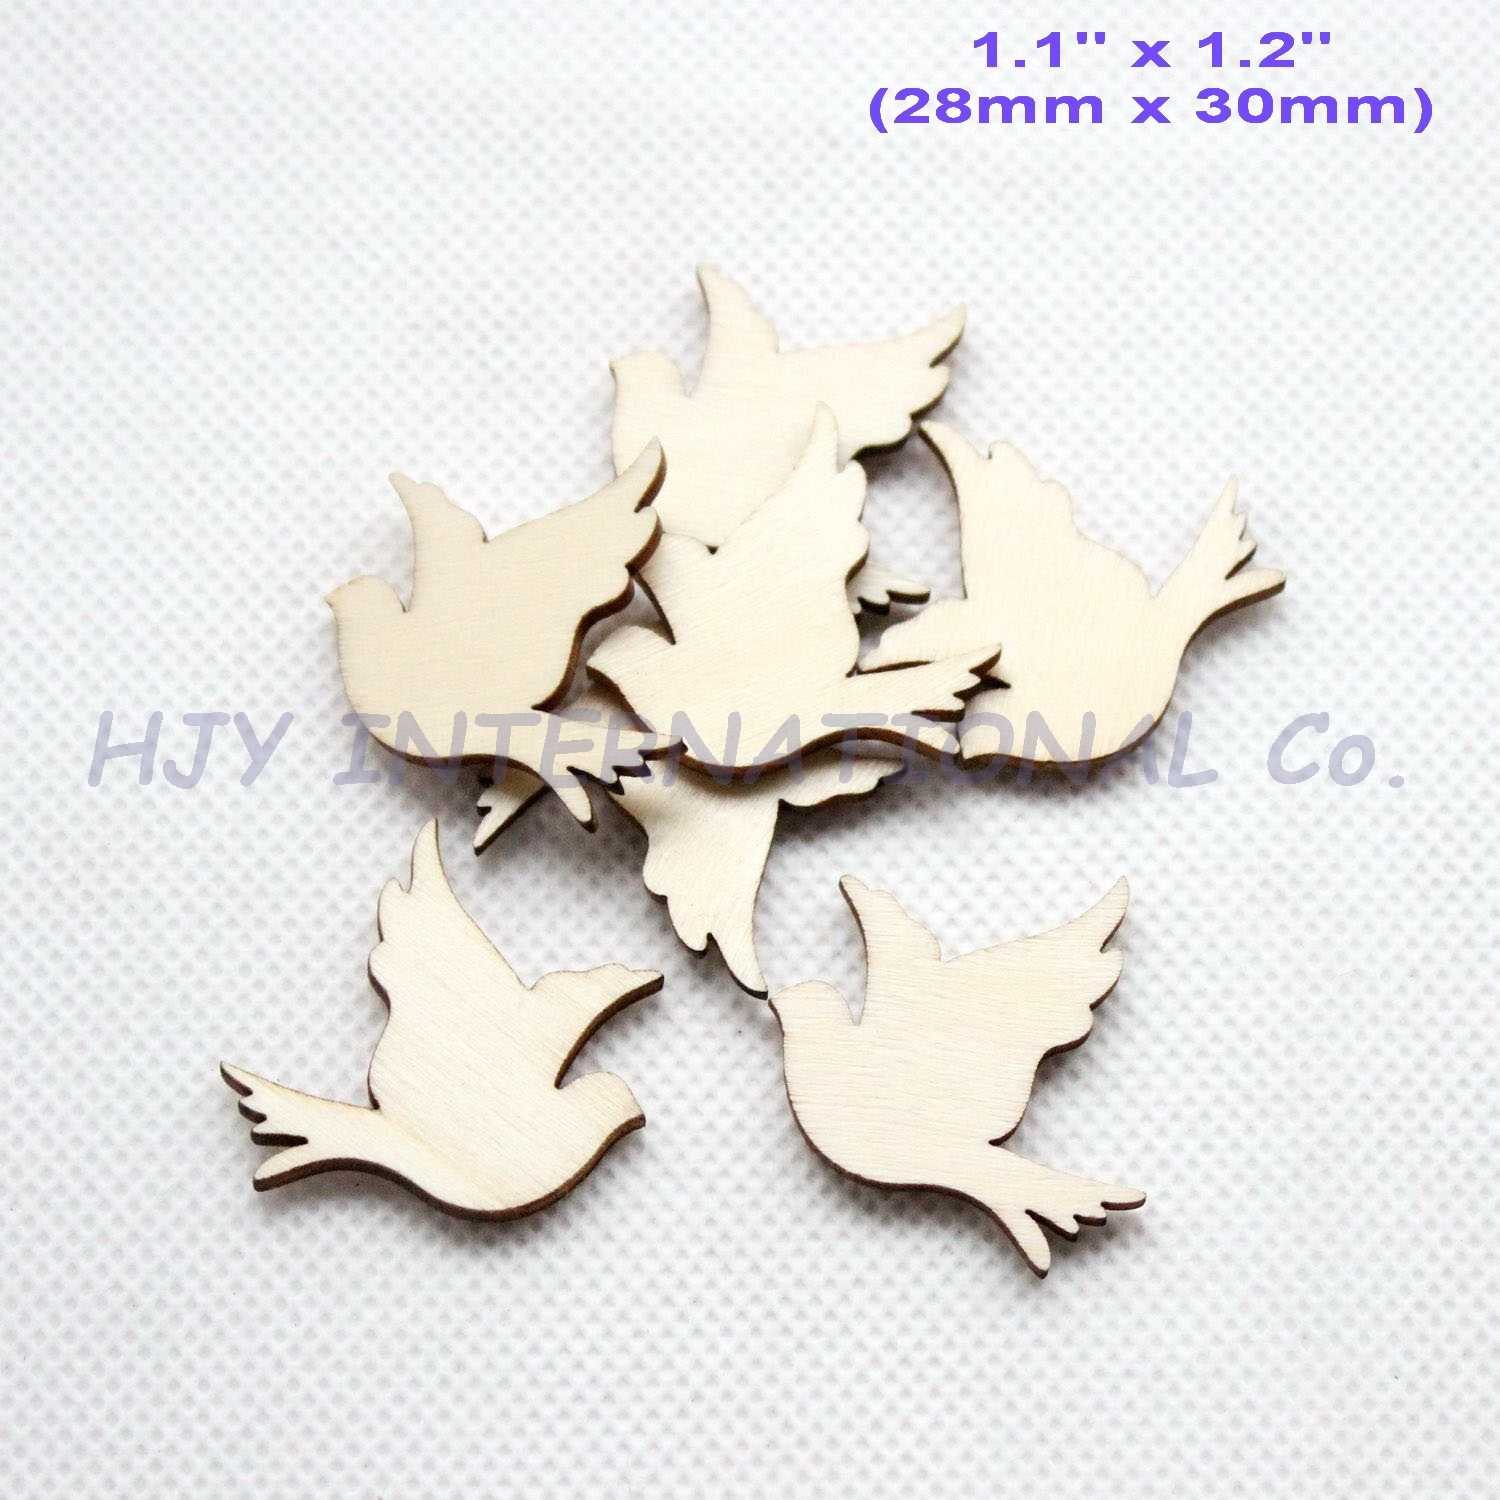 (100pcs/lot) 30mm Natural Blank Wooden Peace Birds Ornaments Rusitc Favor Crafts In Bulk-CT1418B